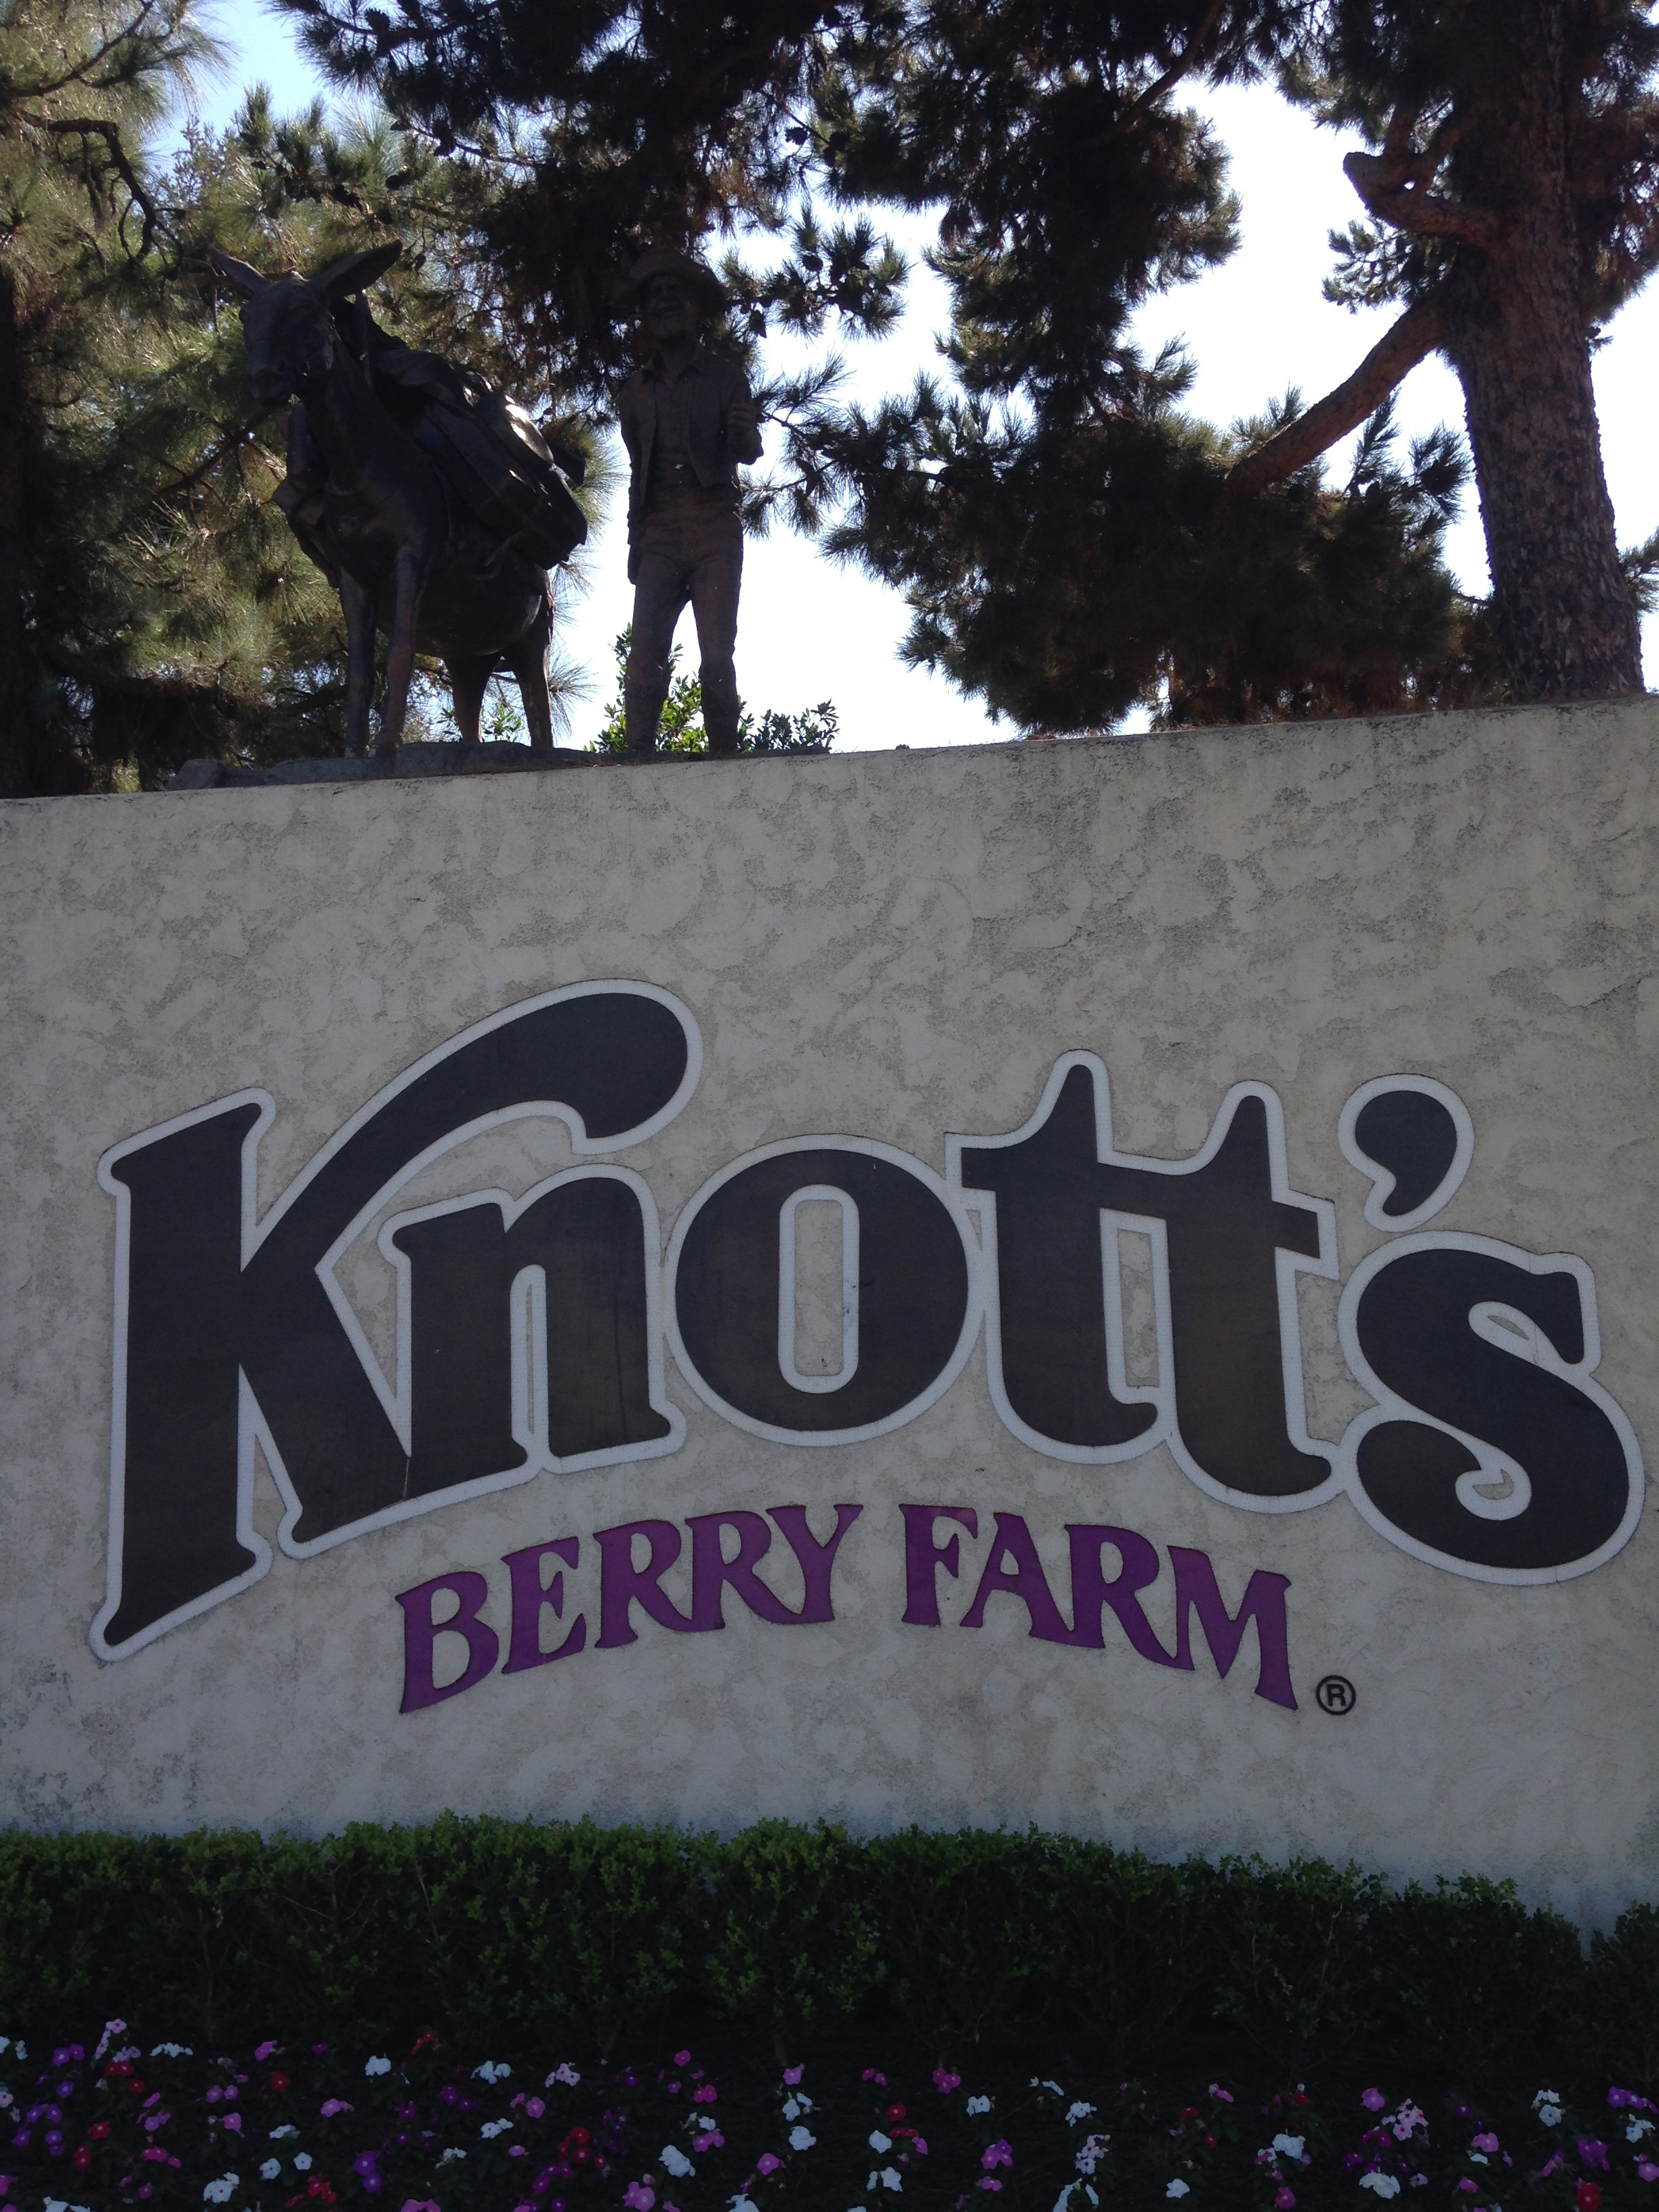 Knott_s BERRY FARM